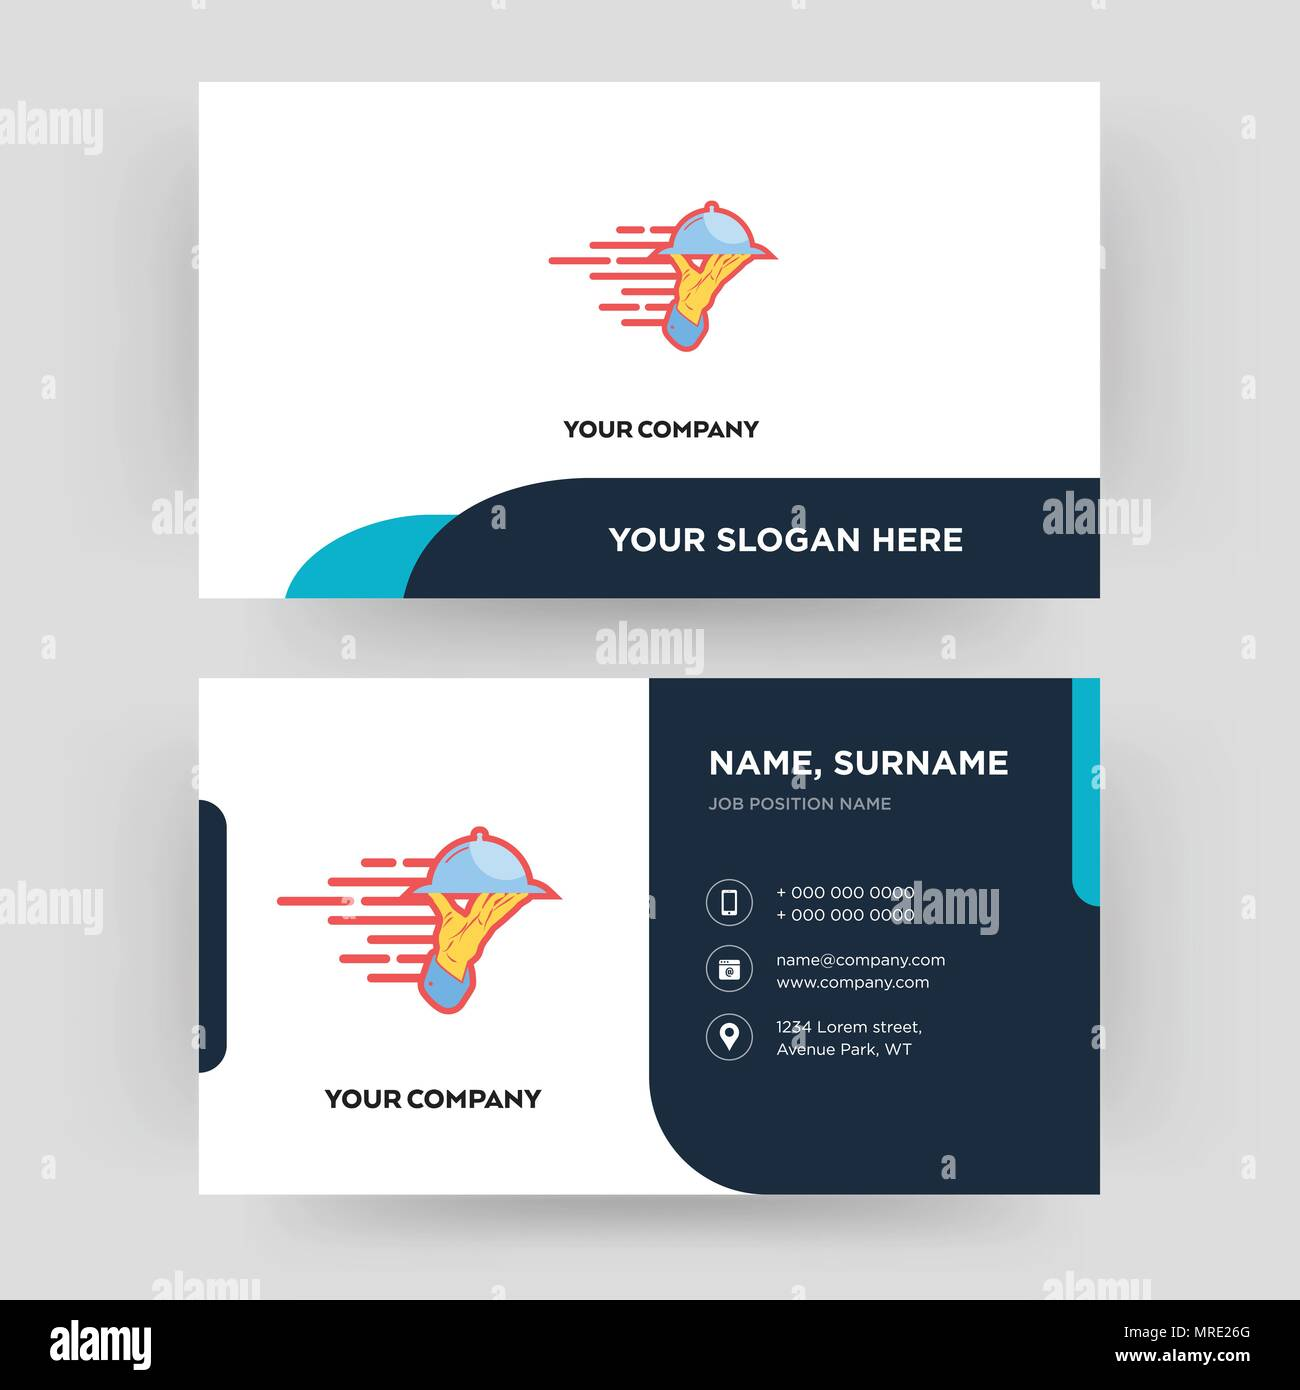 Catering services business card design template visiting for your catering services business card design template visiting for your company modern creative and clean identity card vector colourmoves